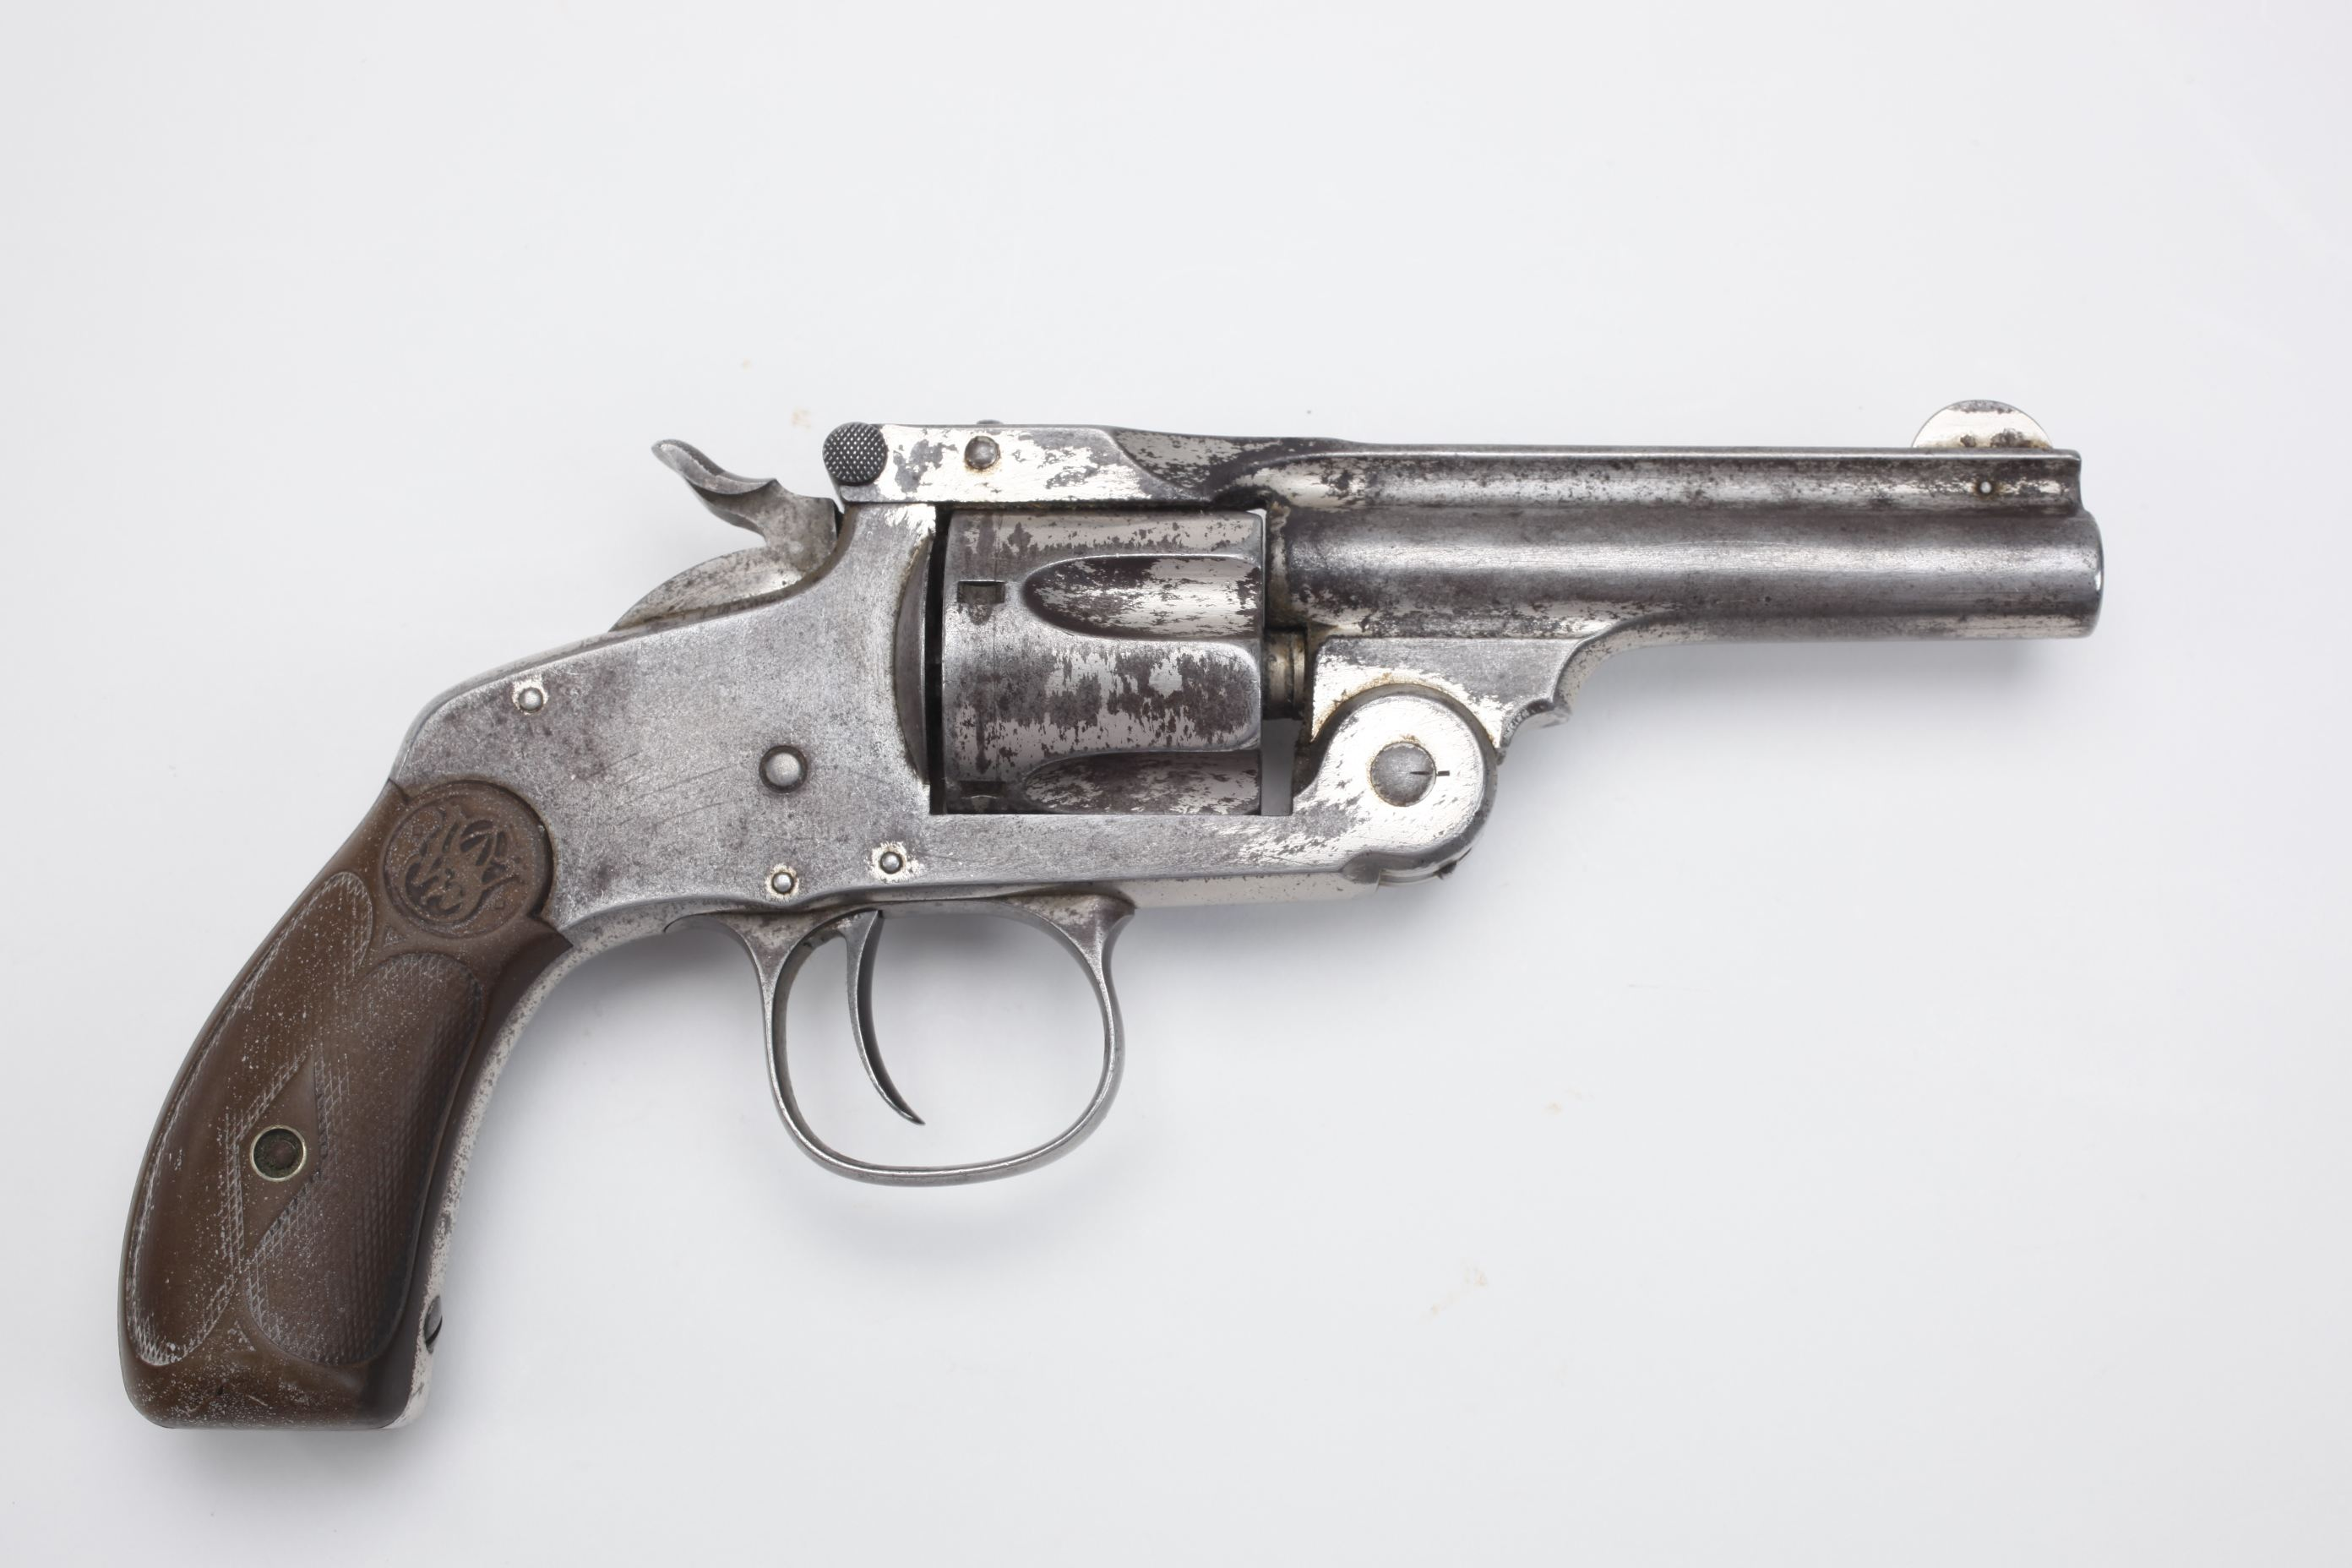 Smith & Wesson 38 Single Action Revolver